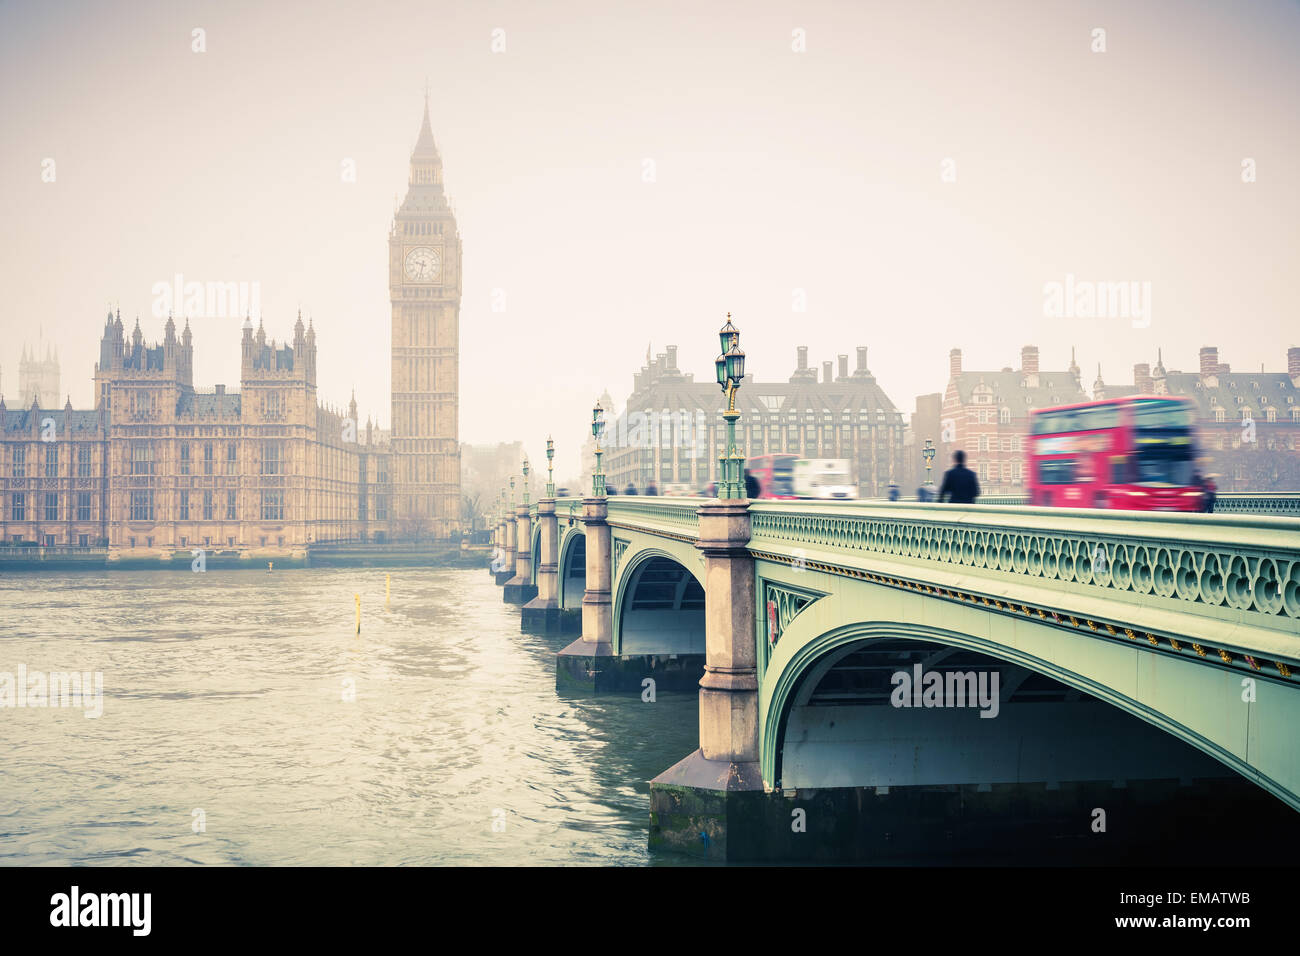 Big Ben and westminster bridge - Stock Image